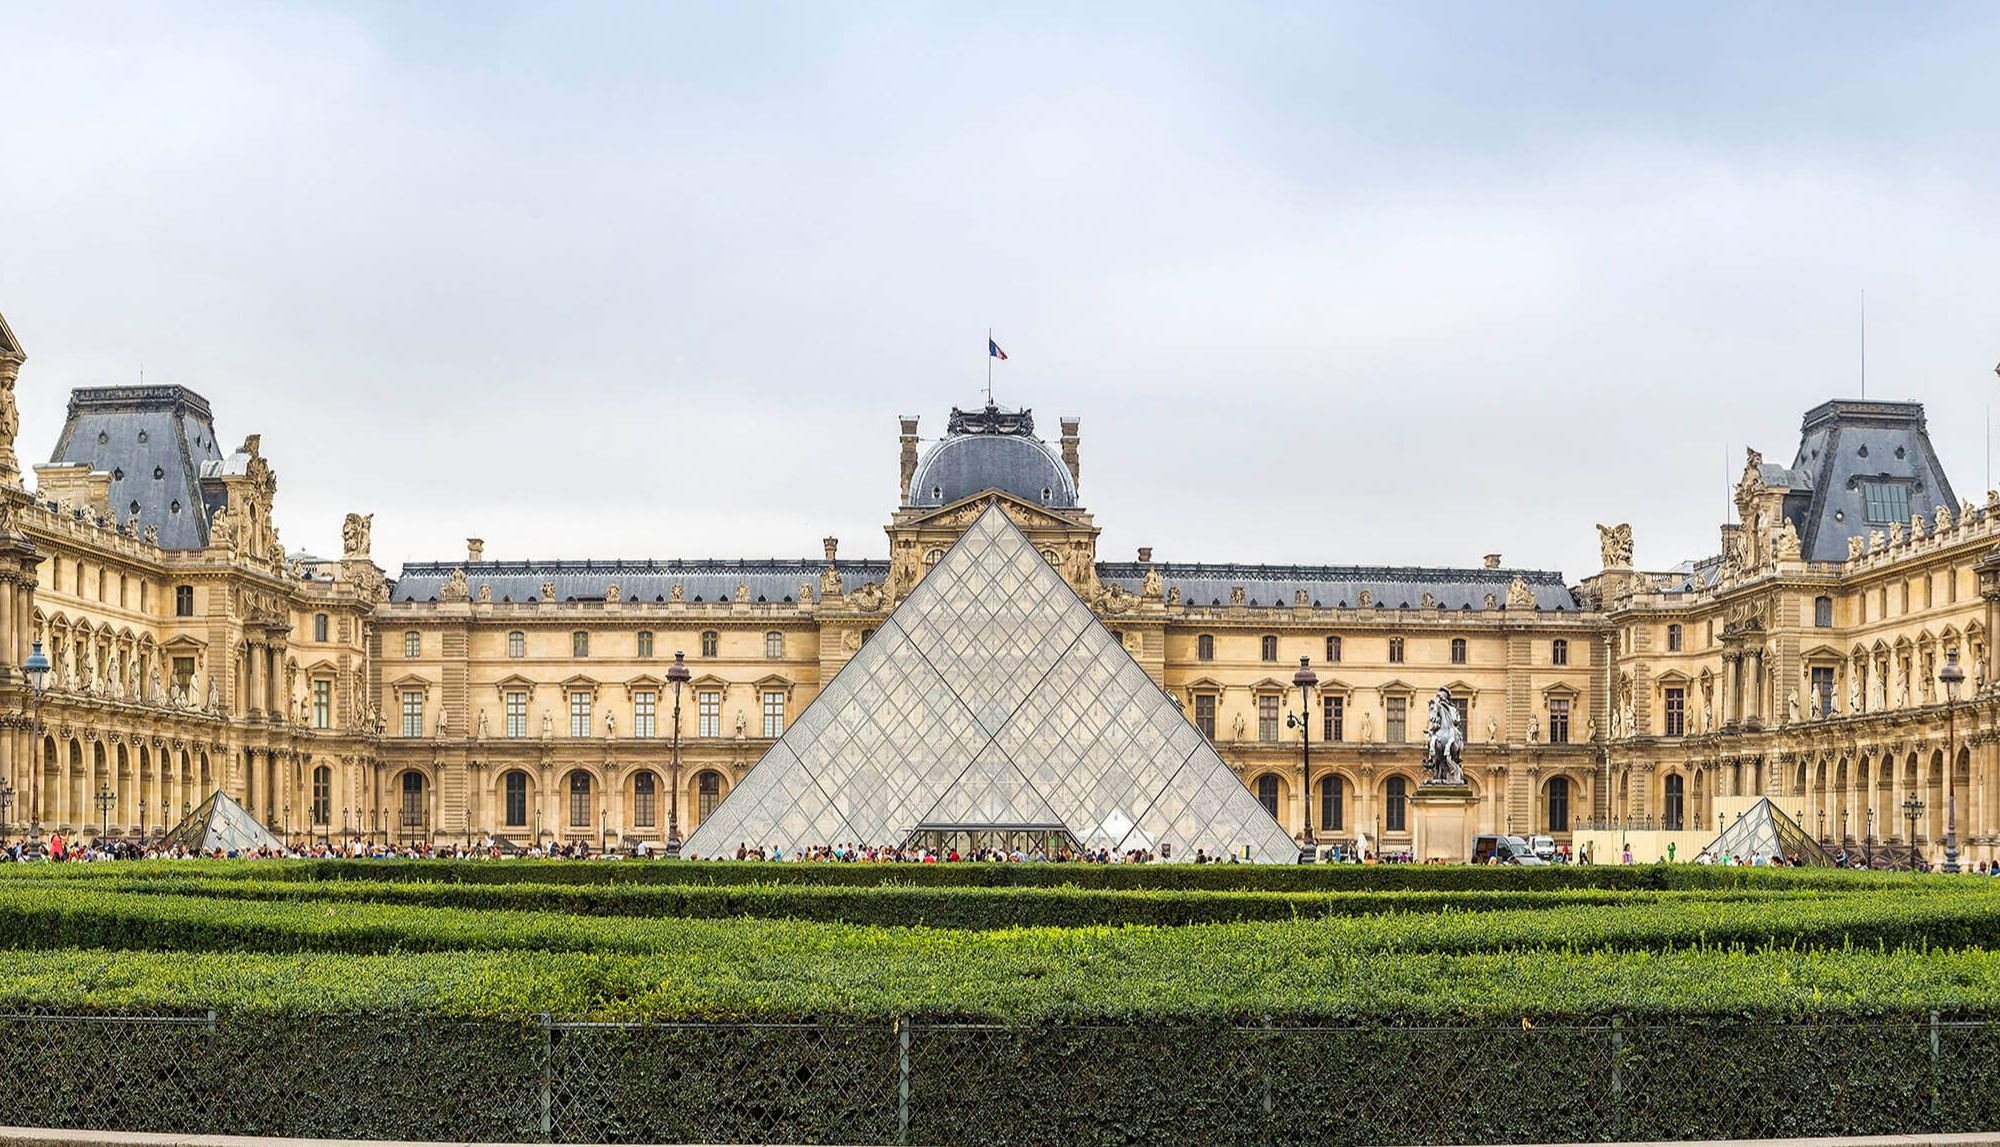 Customized Louvre Museum Guided Tour in a Private Group (1-4 people)